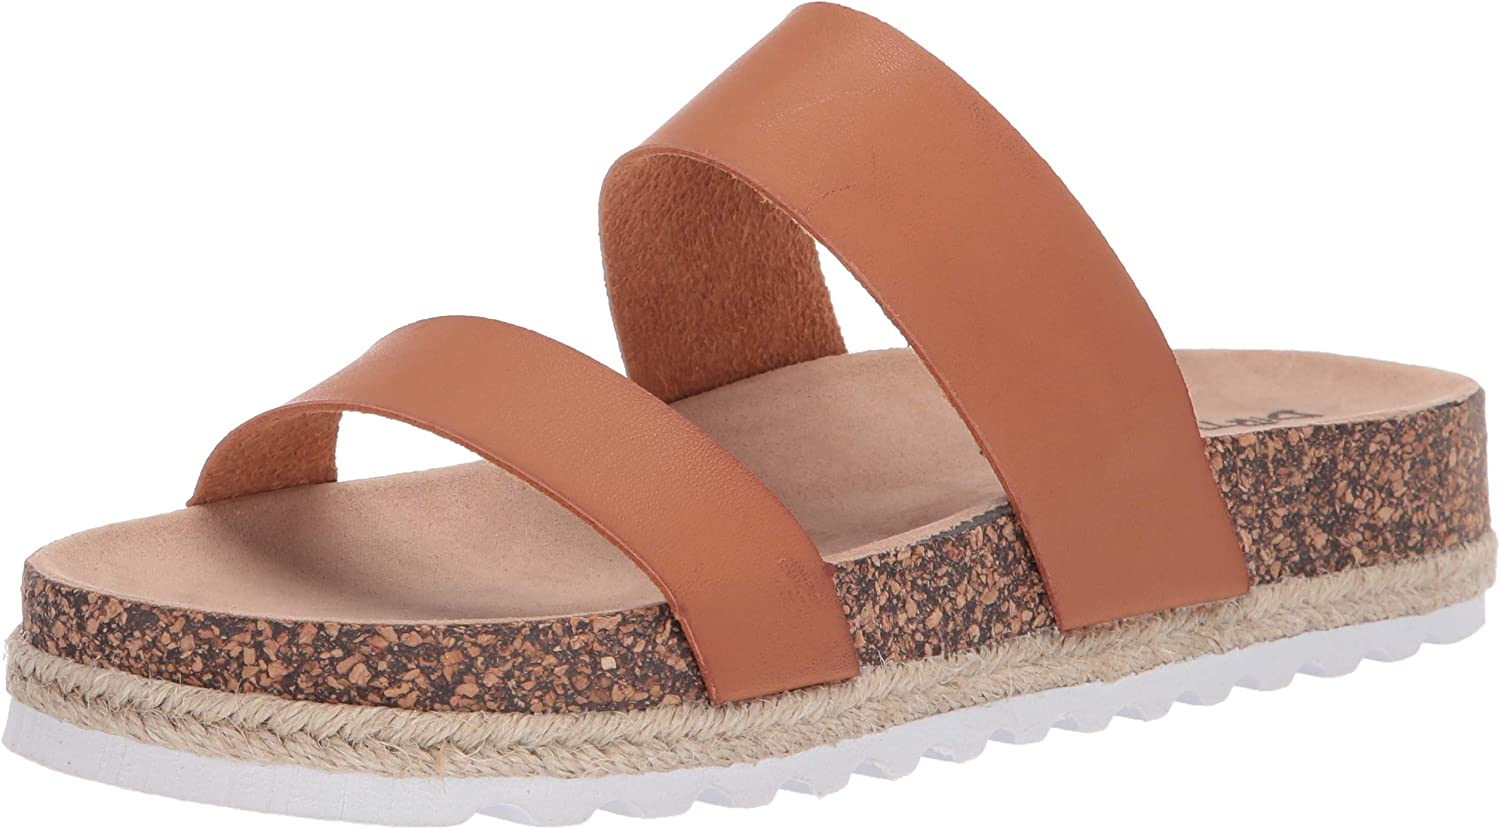 Dirty Laundry Womens Double Play Slide Sandal